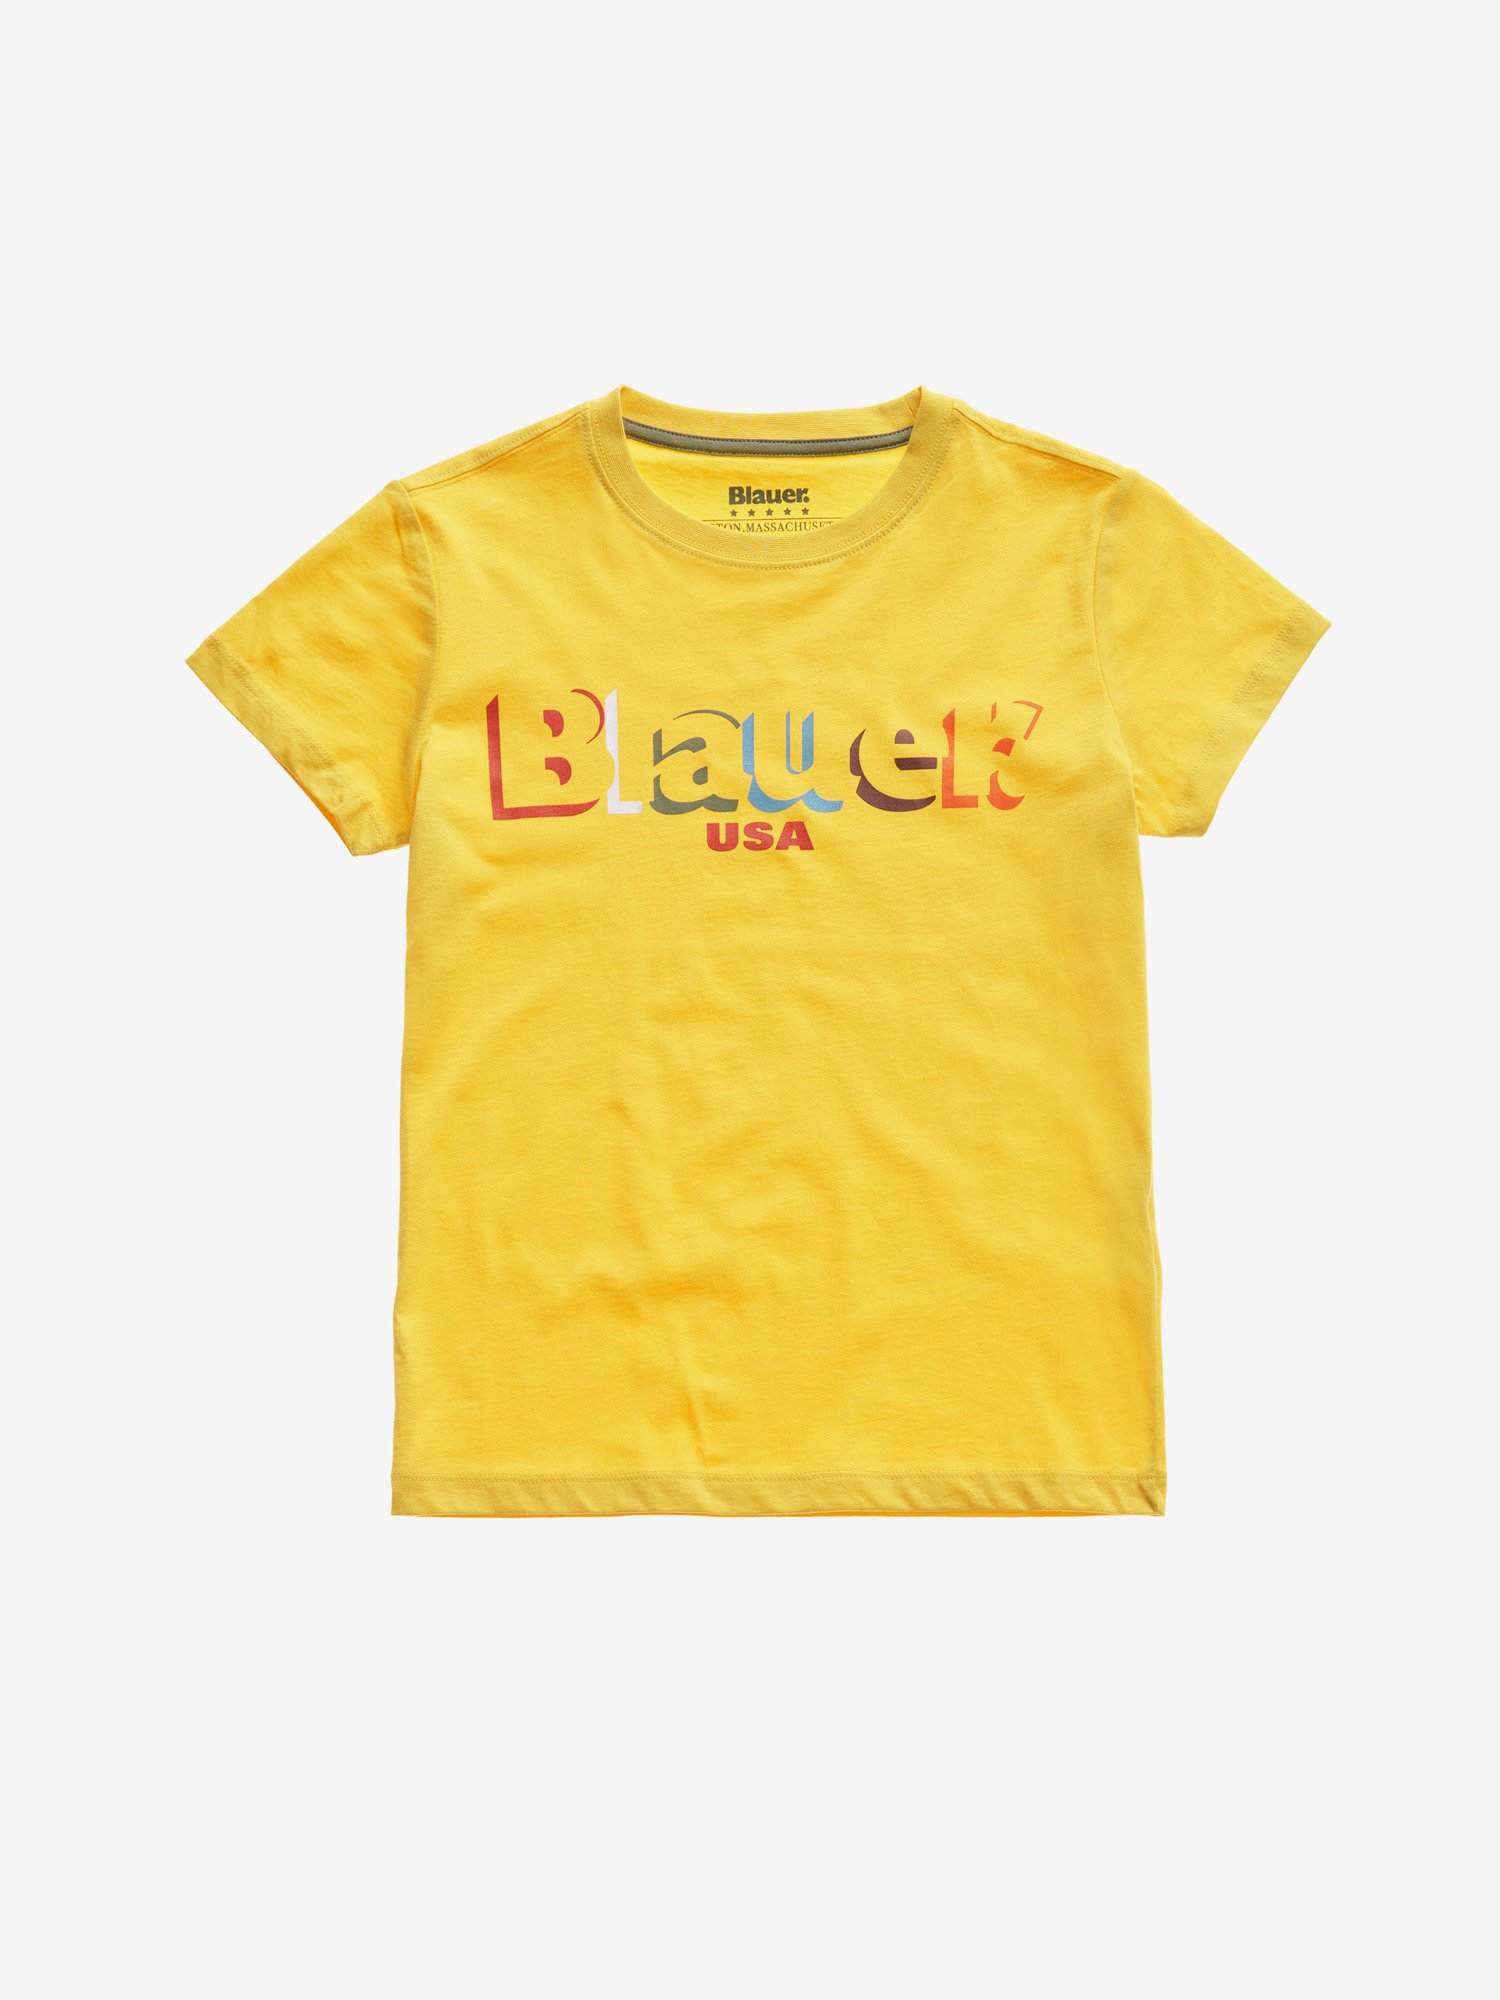 T-SHIRT JUNIOR BLAUER COLORATA - Blauer